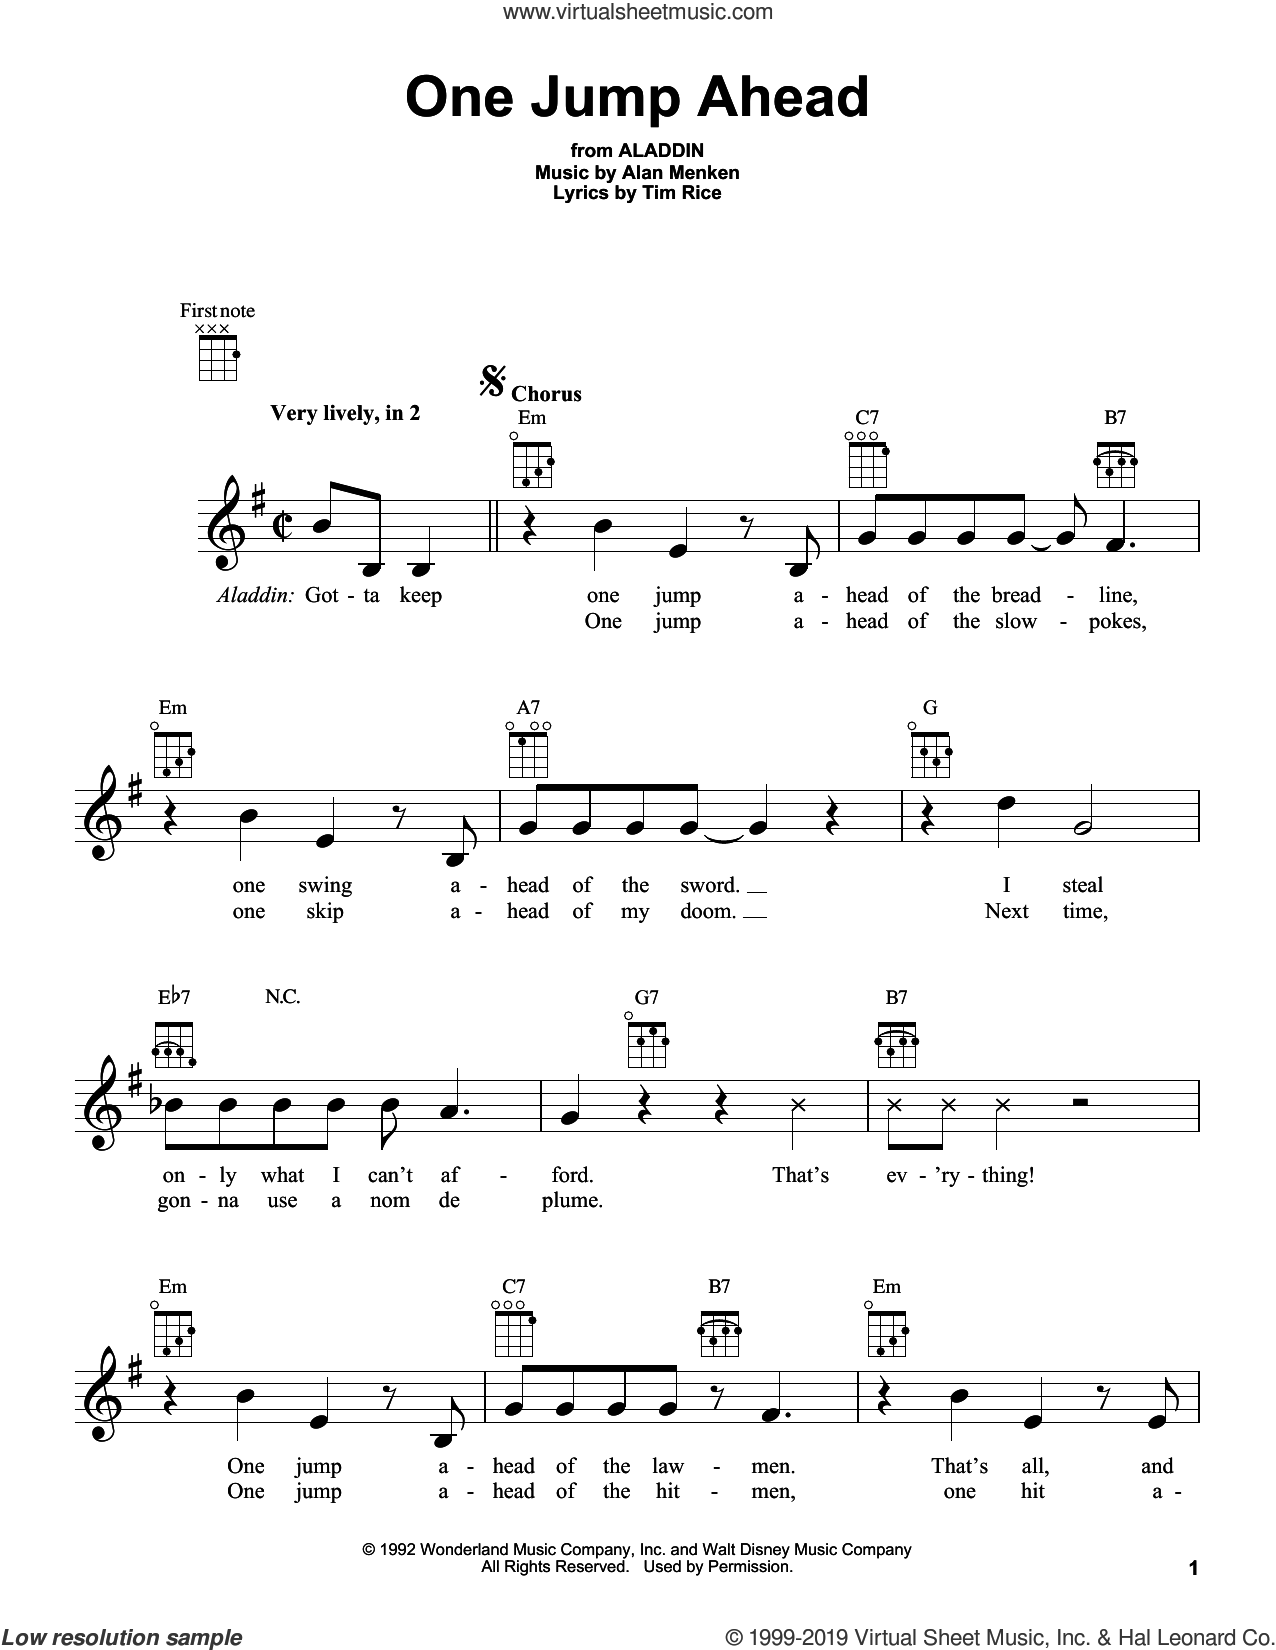 One Jump Ahead (from Aladdin) sheet music for ukulele by Alan Menken and Tim Rice, intermediate skill level